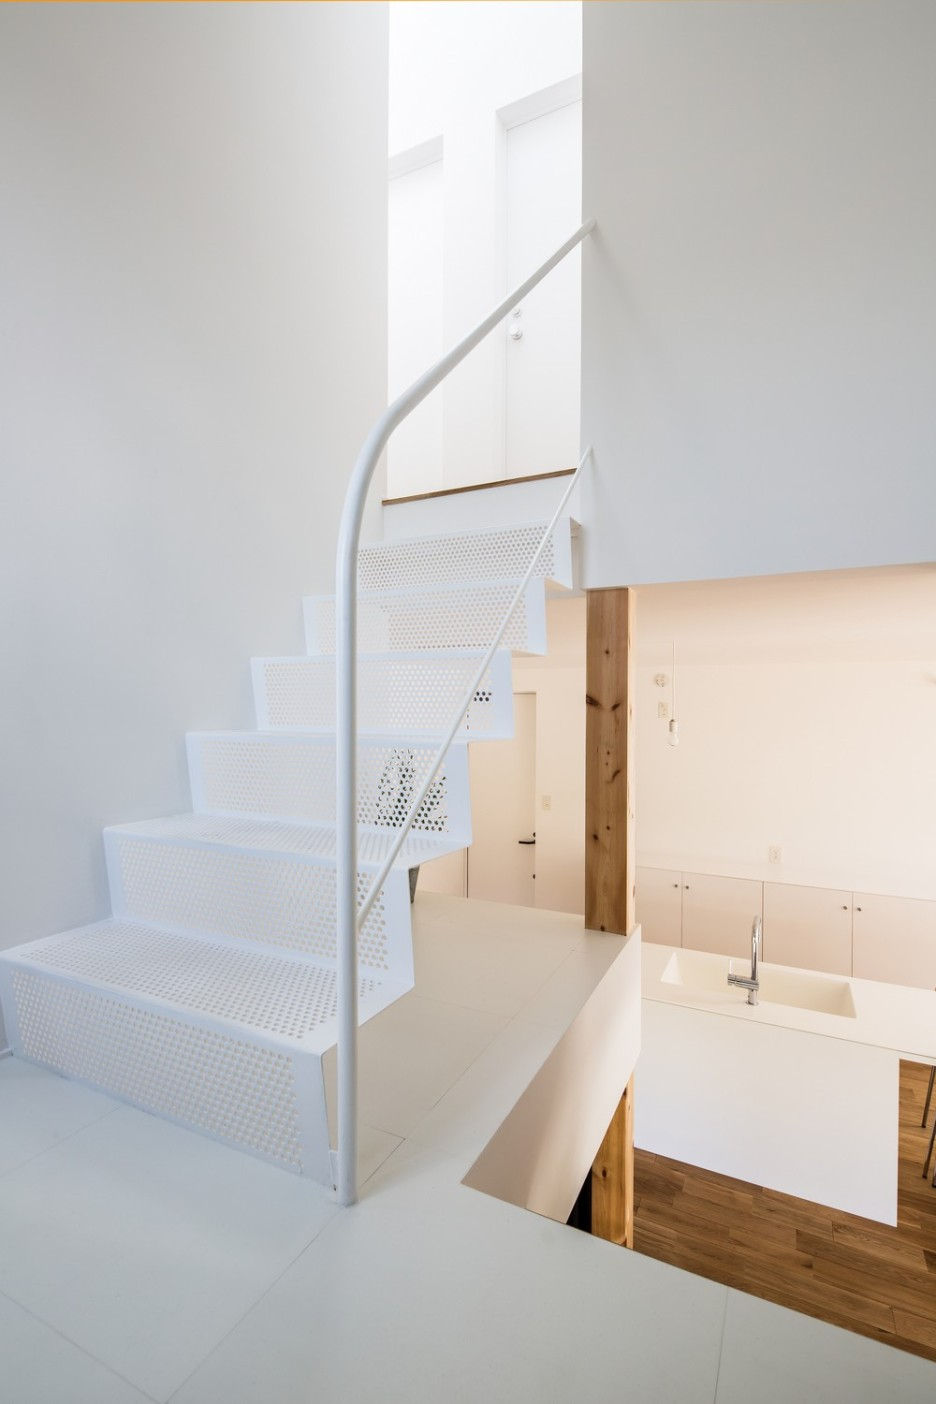 Modern Japanese Architecture Home Gives Inspiring Design Idea: Stunning Kawate Residence Home Design Interior In Staircase Used White Minimalist Decoration With Industrial Design For Home Inspiration